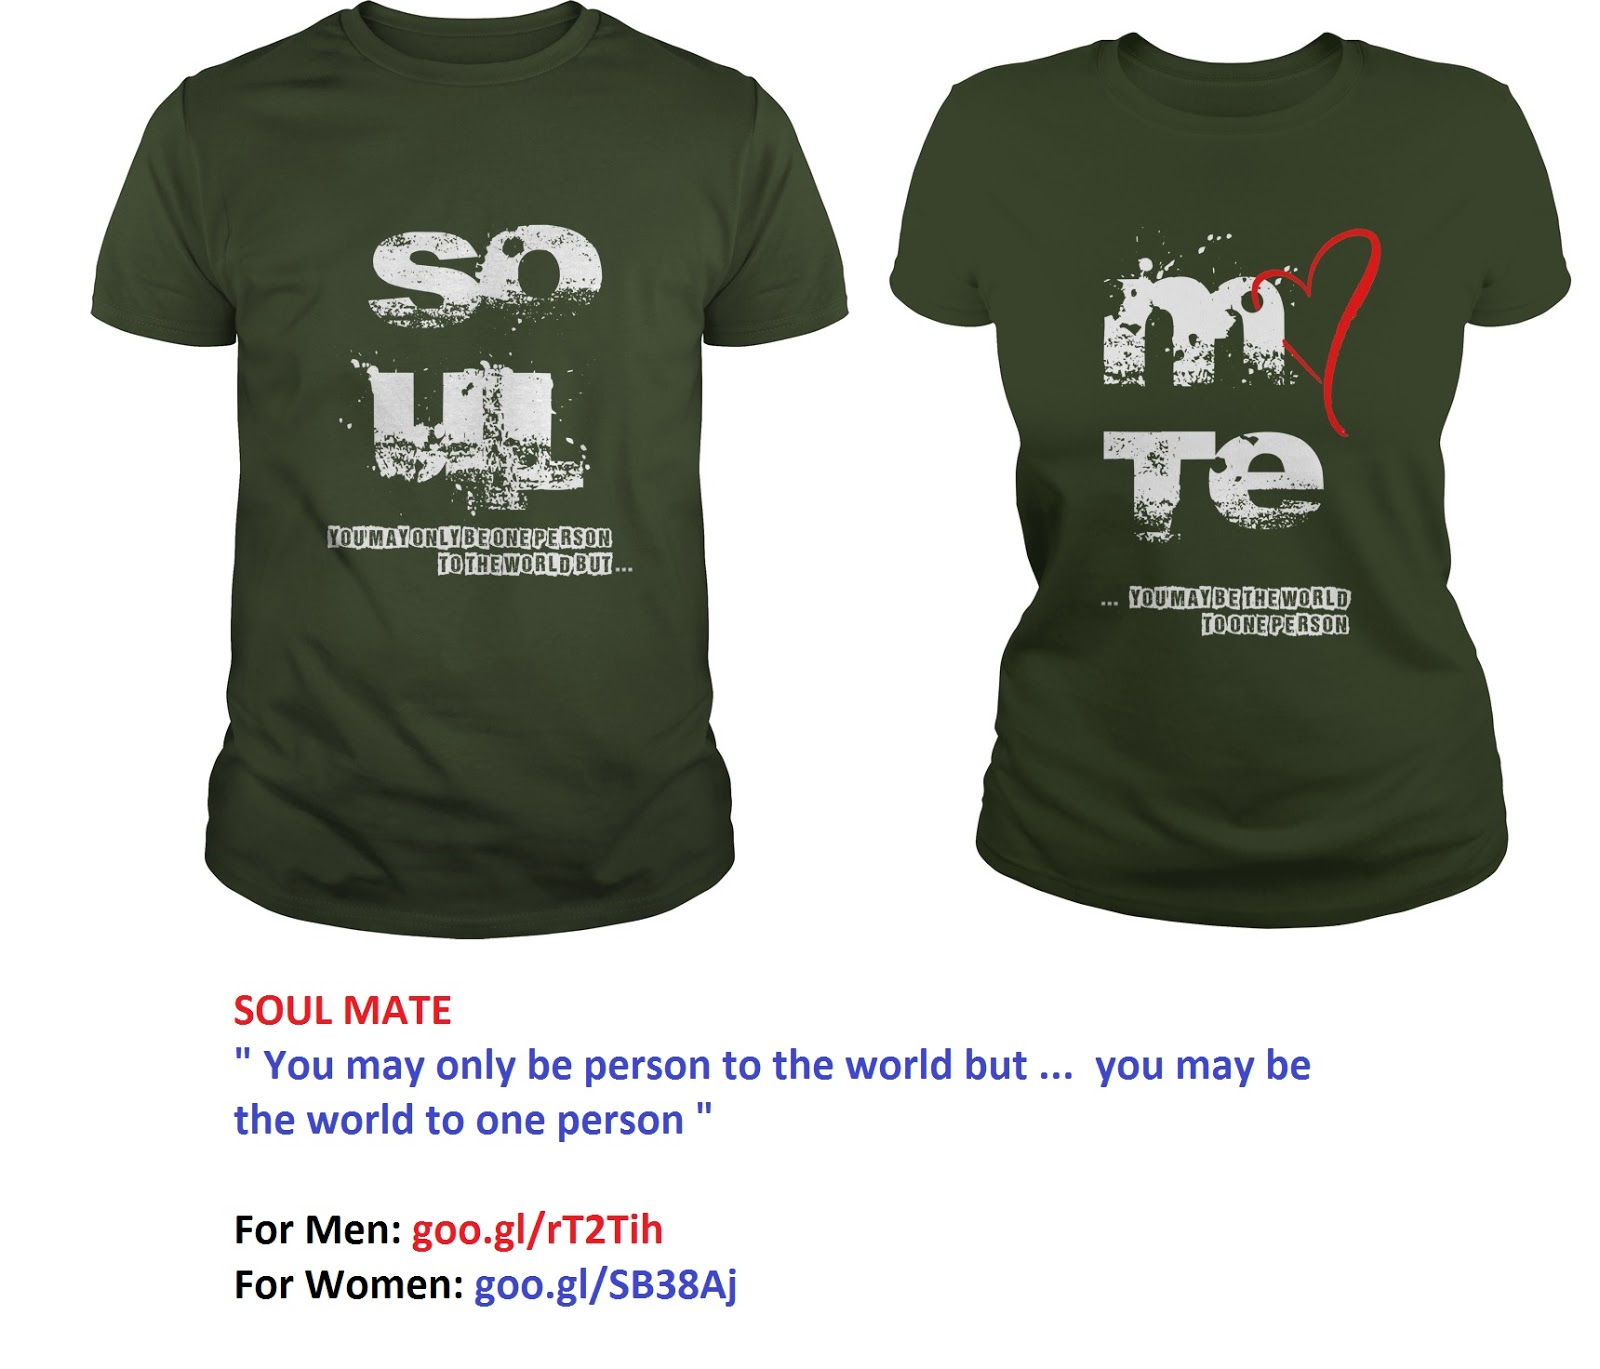 Couple Shirt New Designs 100 Love Couple T Shirts Design